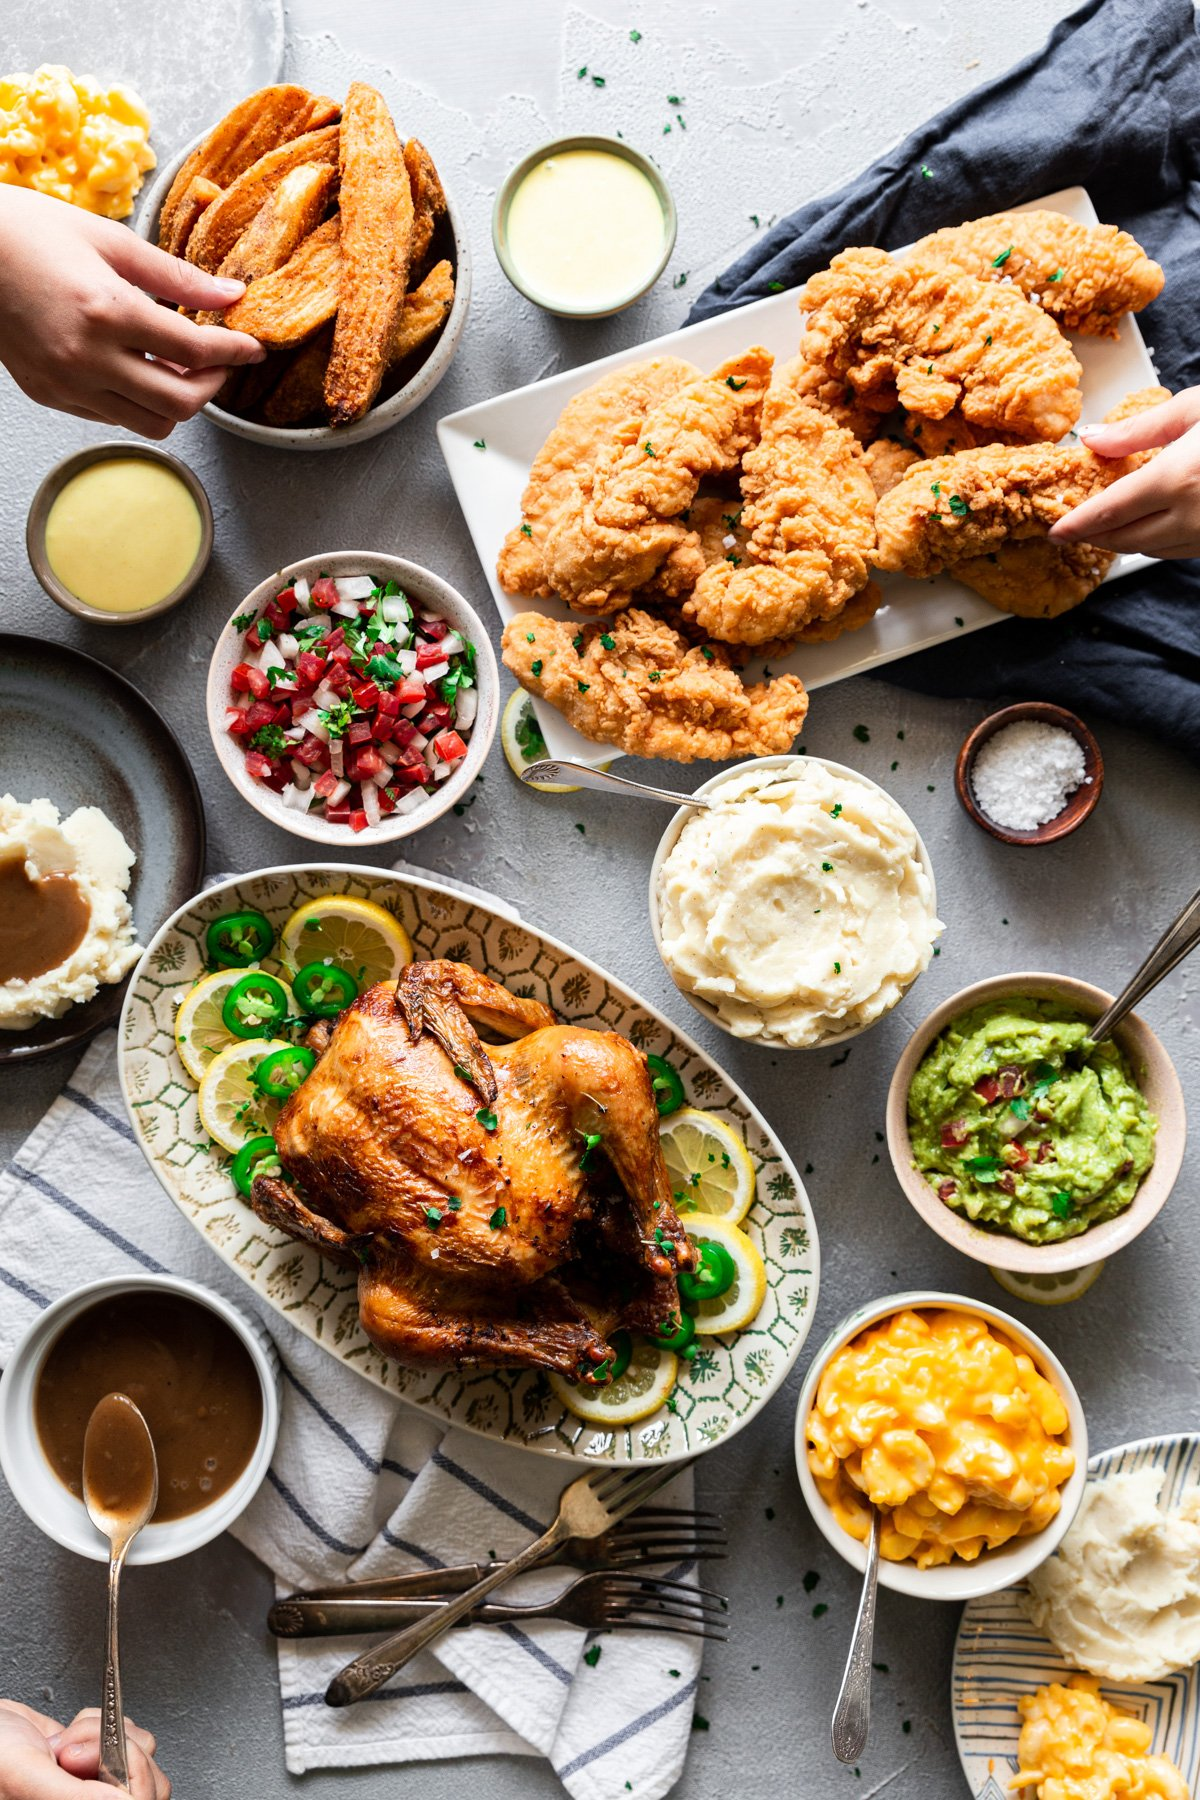 overhead tablescape of chicken, sides dishes, condiments, and hands grabbing food